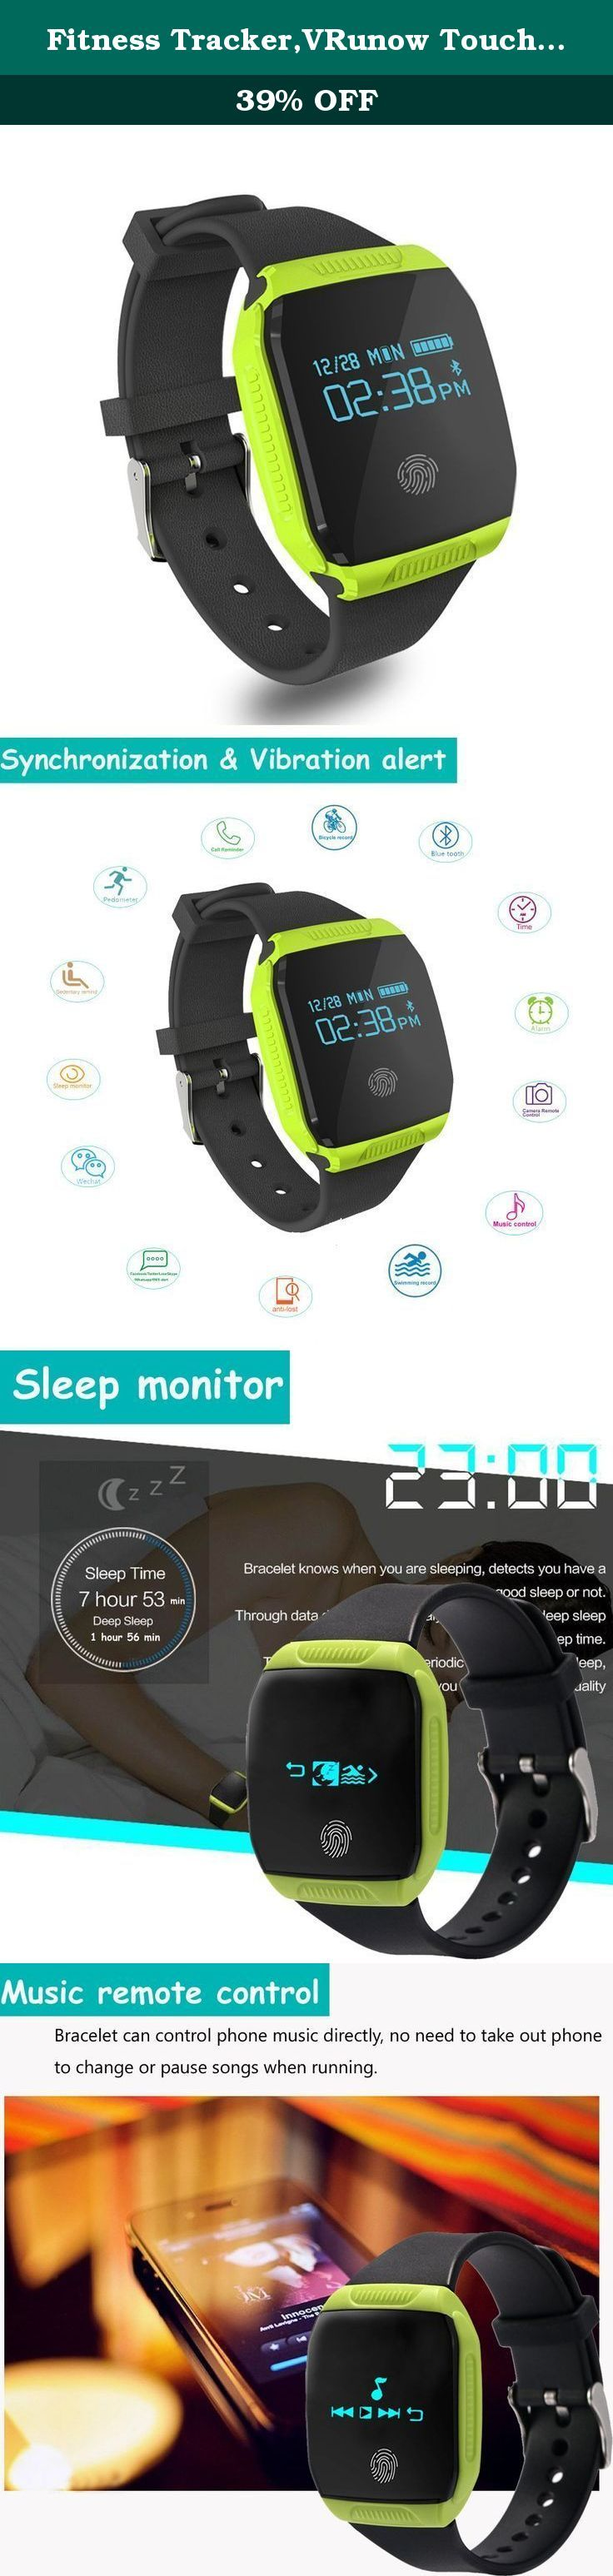 Fitness Tracker,VRunow Touch Key Fitness Tracker Watch Multi-sport Tracker, Swimming Tracker Activity Tracker Bracelet Pedometer Sleep Monitor. Feature: Keep connected with smartphone through Bluetooth Touch key and turn wrist operated, wristband and body can be detached. Function: Pedometer/Kilometer/calorie record, Riding record, Swimming record, Jumping rope record, Jumping Jack record, Sit-up record, Treadmill record, sleep monitor, Music remote control, Camera&Video remote control...